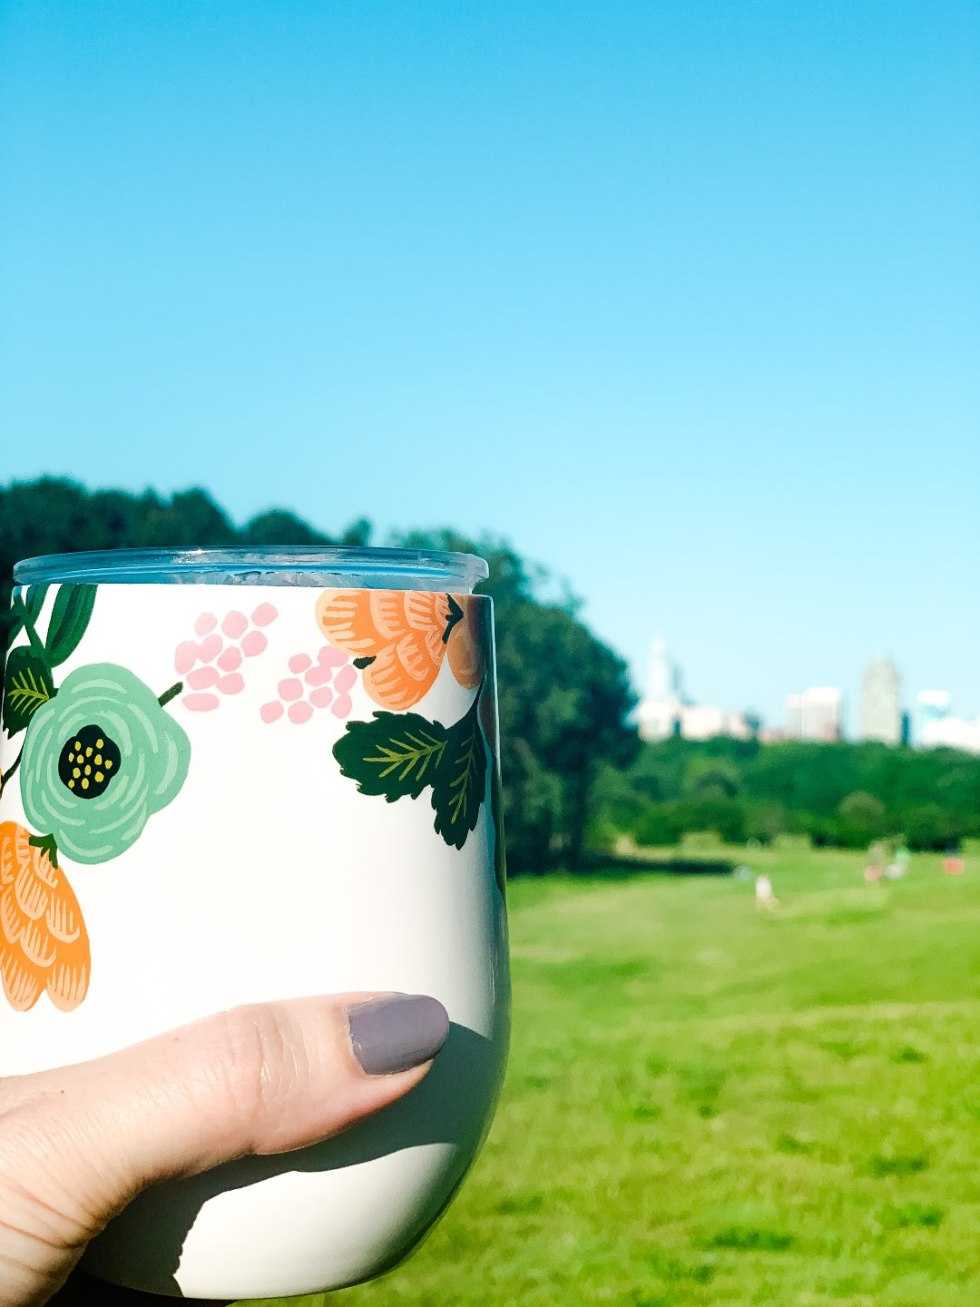 The Top 3 Places to Have a Picnic in Raleigh - I'm Fixin' To - @mbg0112   Picnic in Raleigh by popular North Carolina blog, I'm Fixin' To: image of a woman holding a wine cooler tumbler.